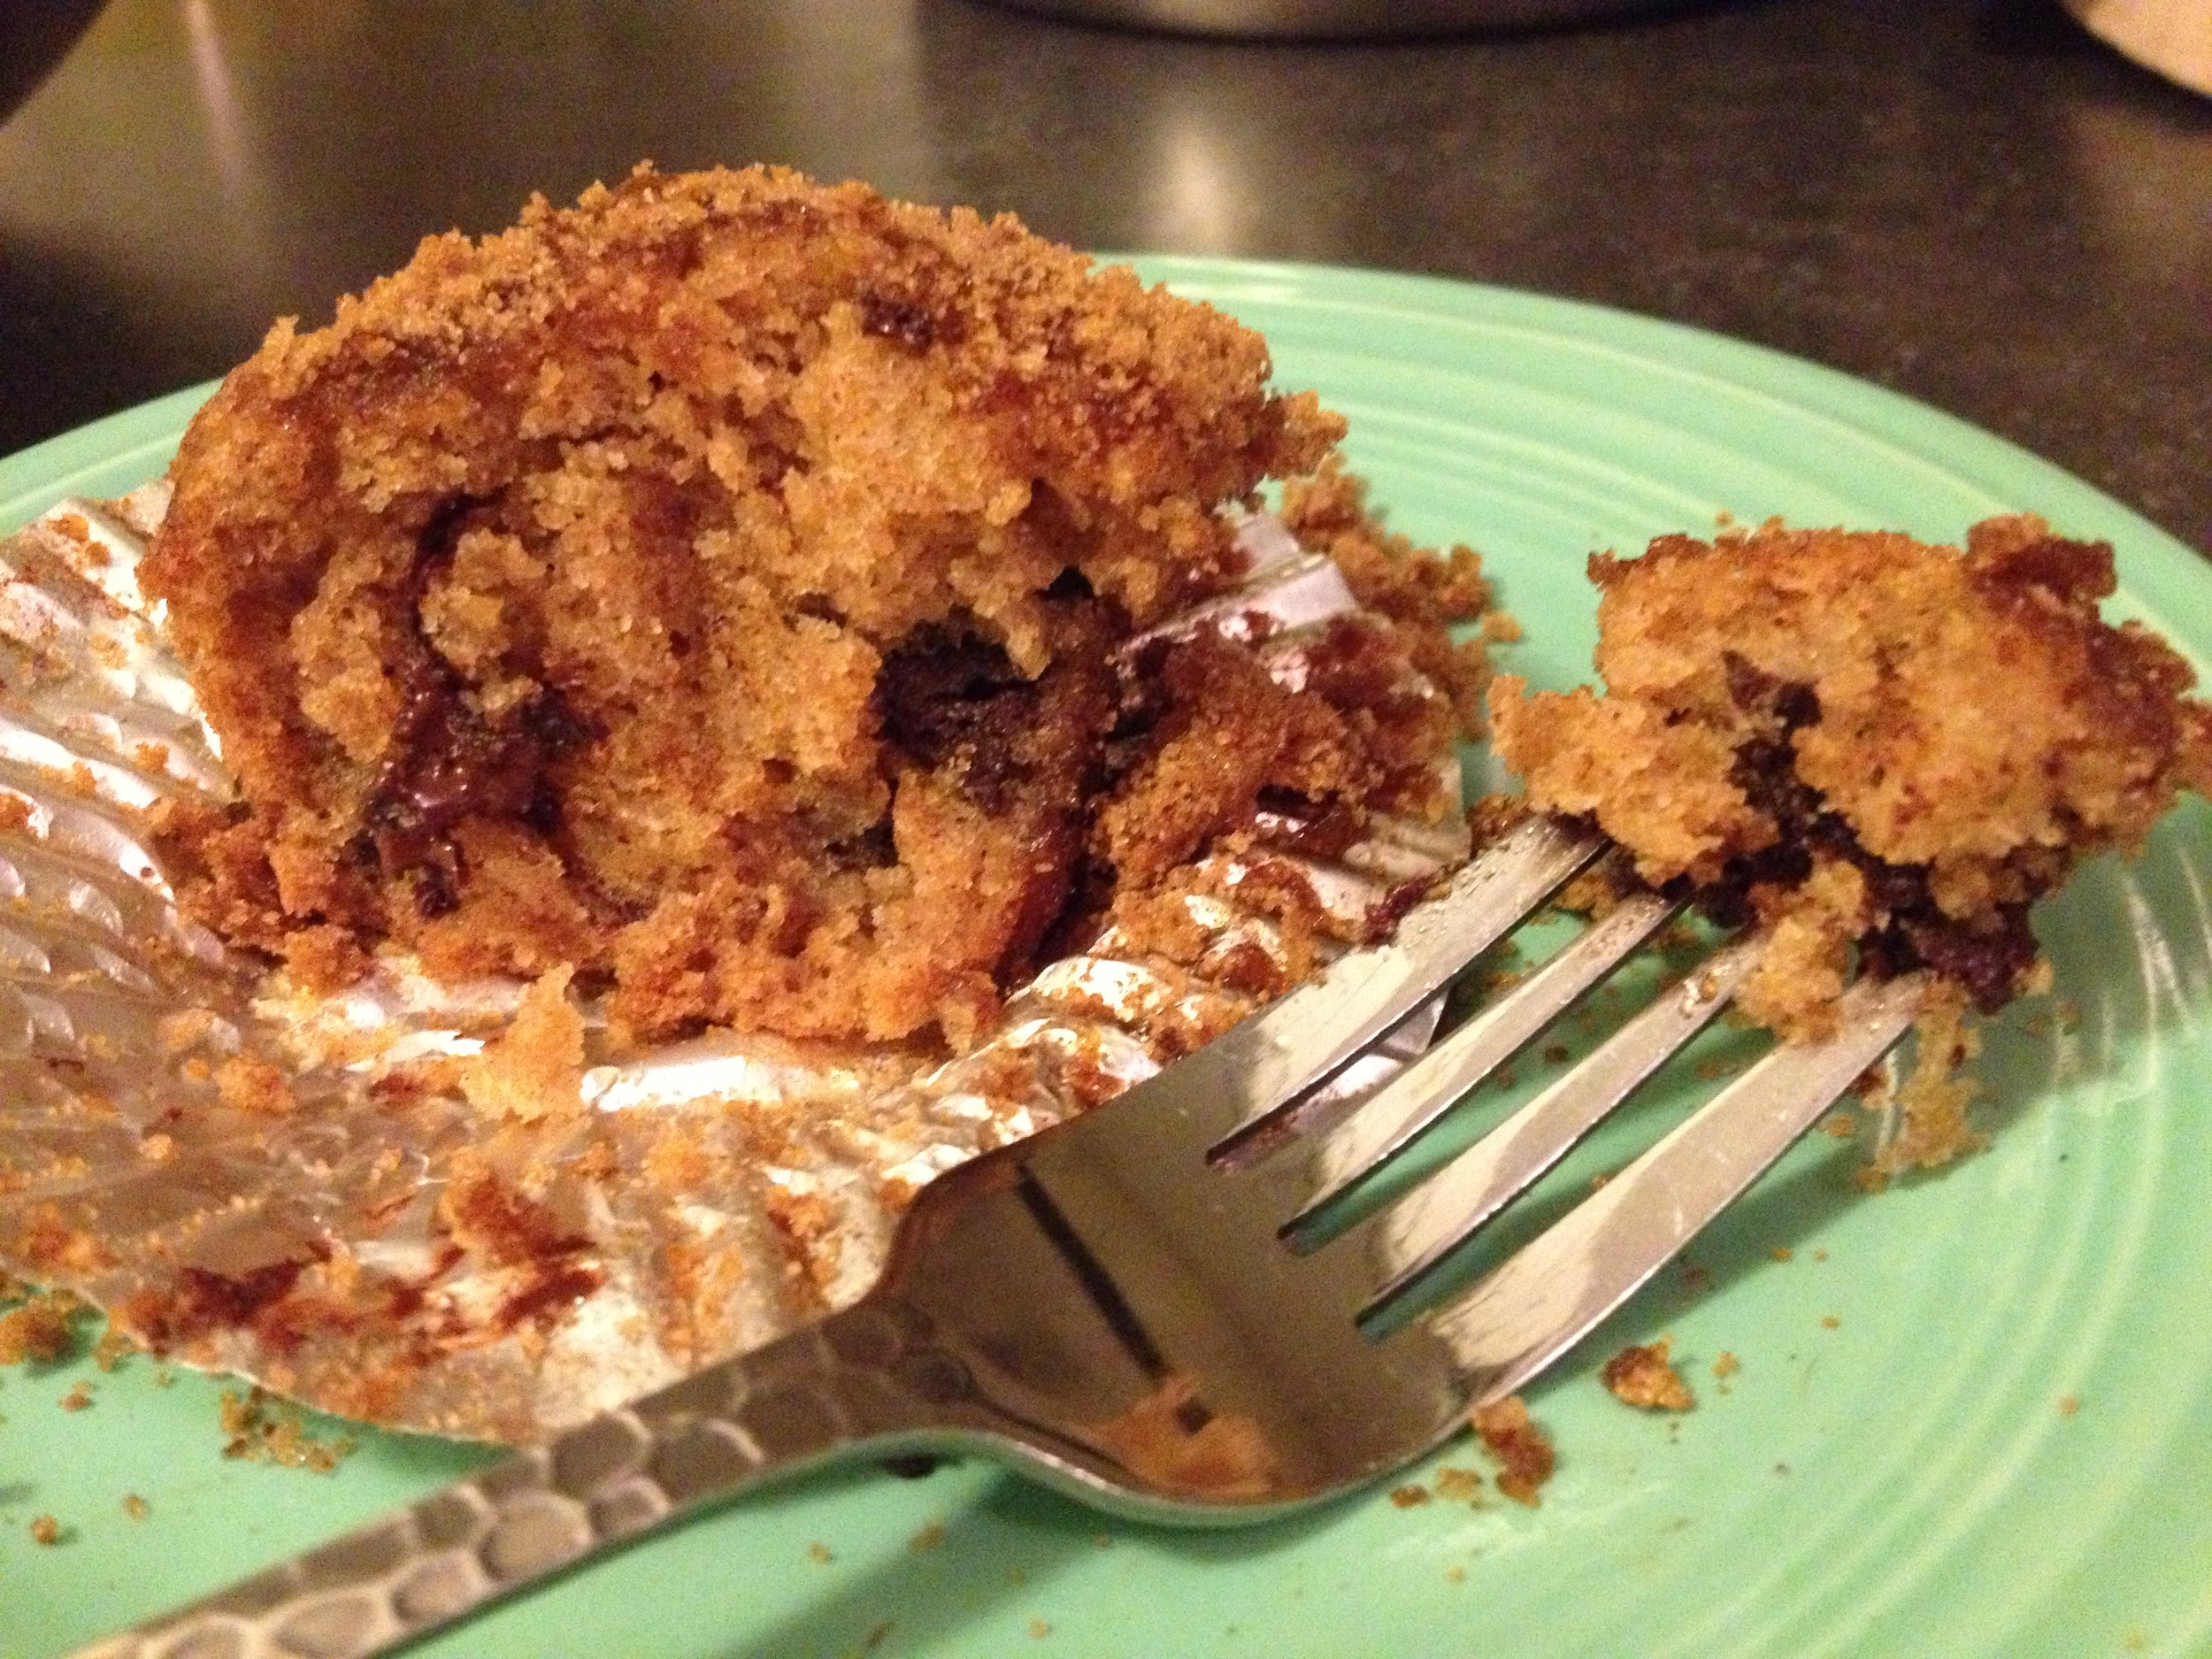 Warm Applesauce Spiced Chocolate Chunk Cupcake, partially devoured.